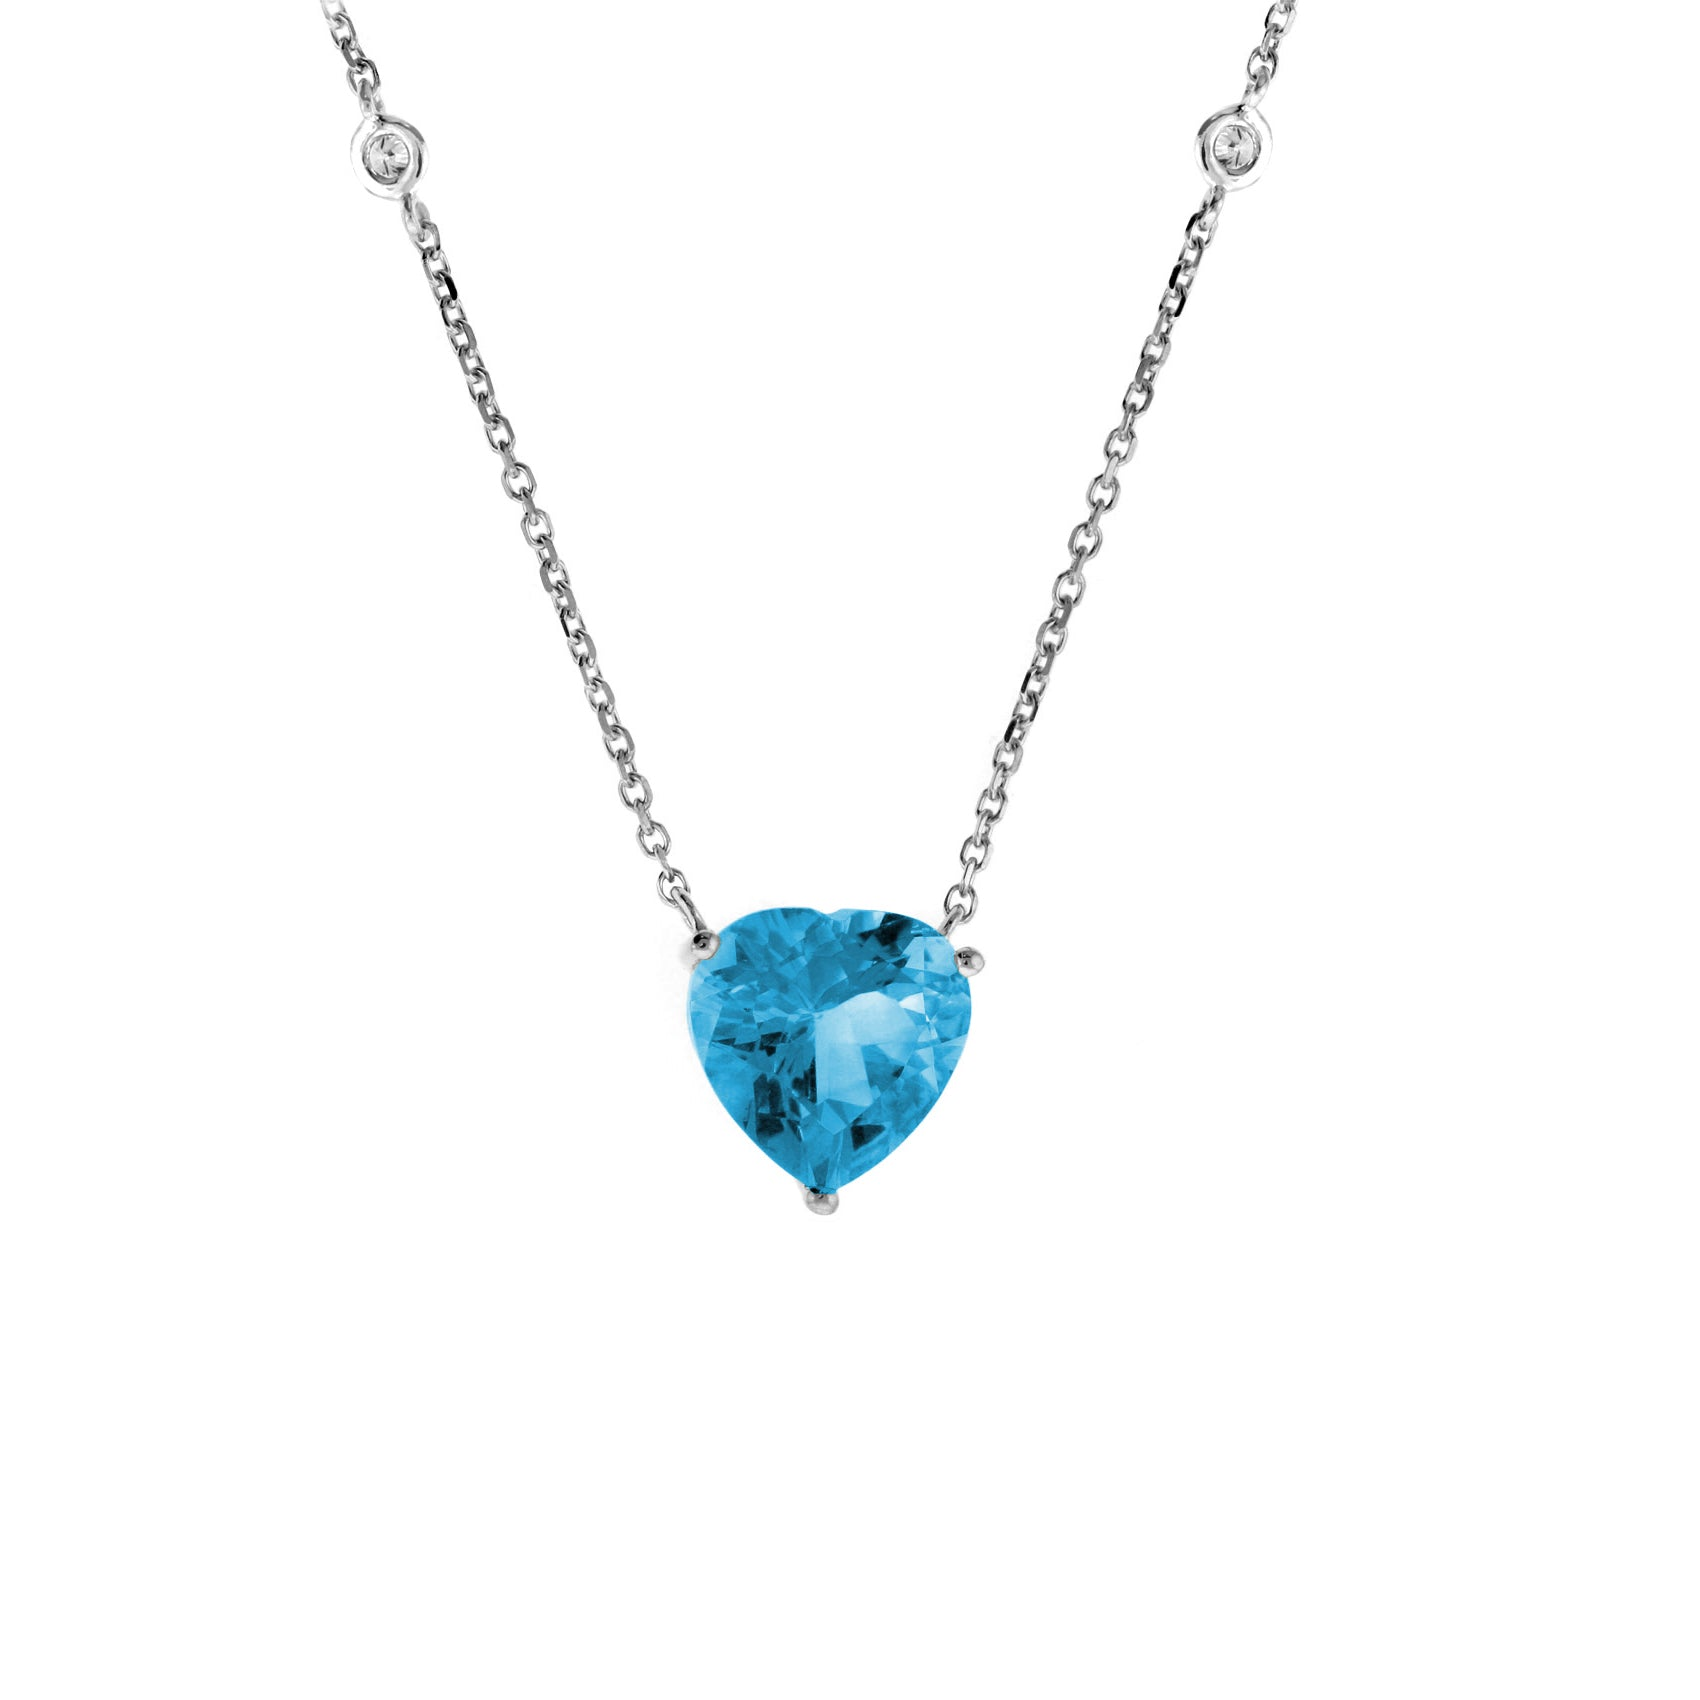 Blue Topaz Heart Necklace with Diamond Accent, 14K White Gold